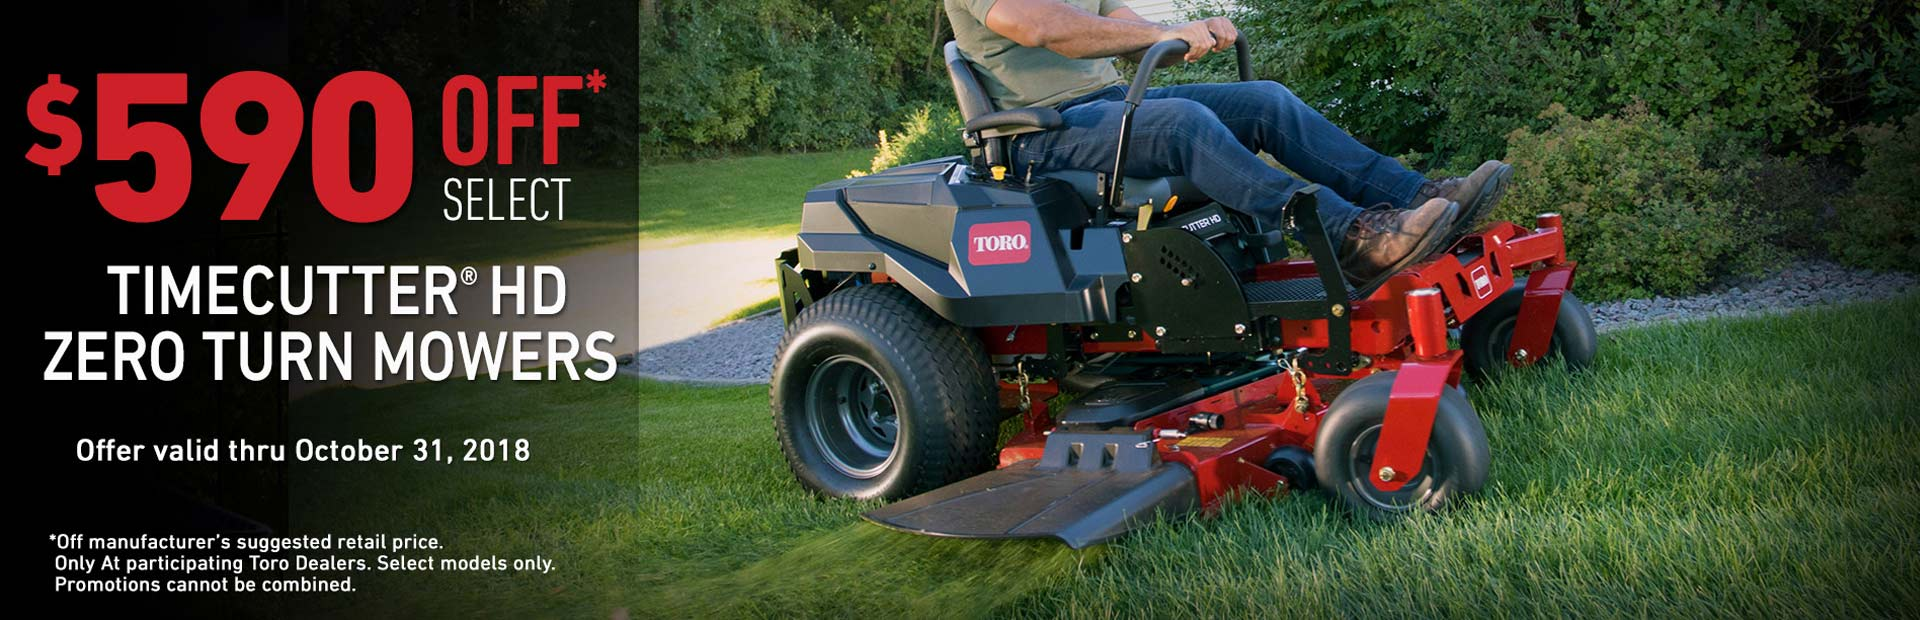 Toro: $590 CAD OFF Select TimeCutter HD Mowers